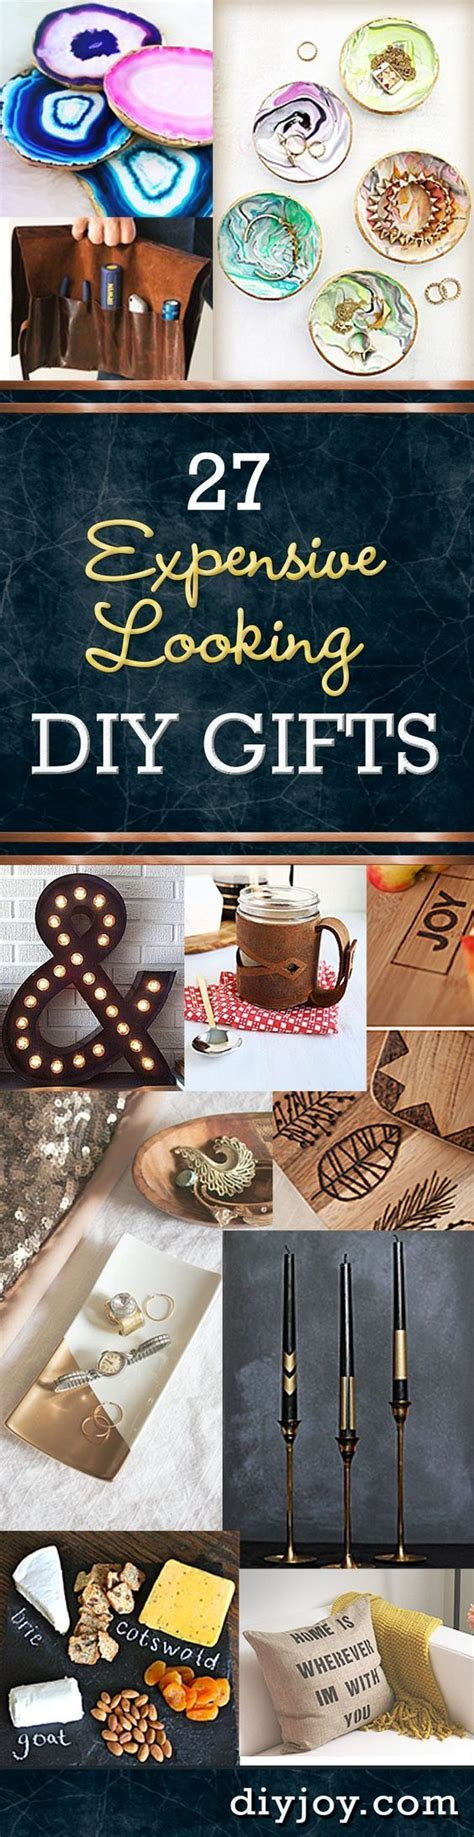 27 expensive looking inexpensive diy gifts creative